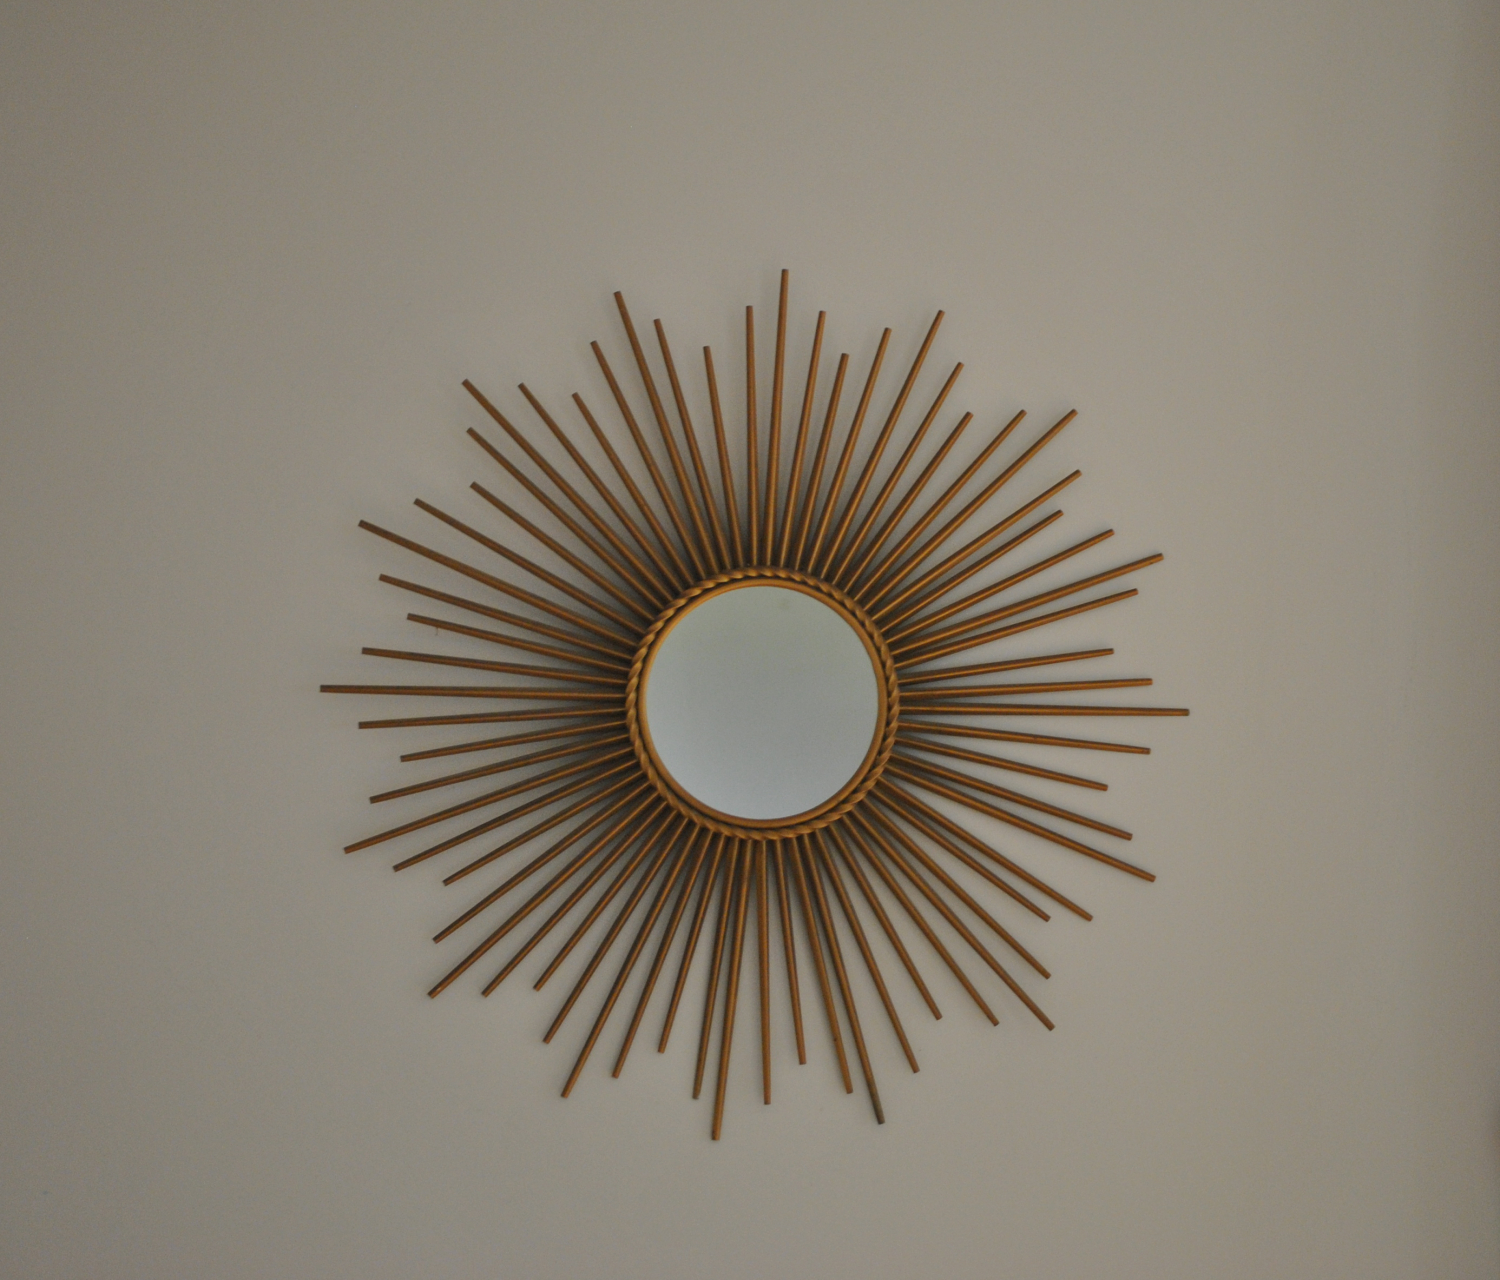 Vallauris Sunburst Mirror